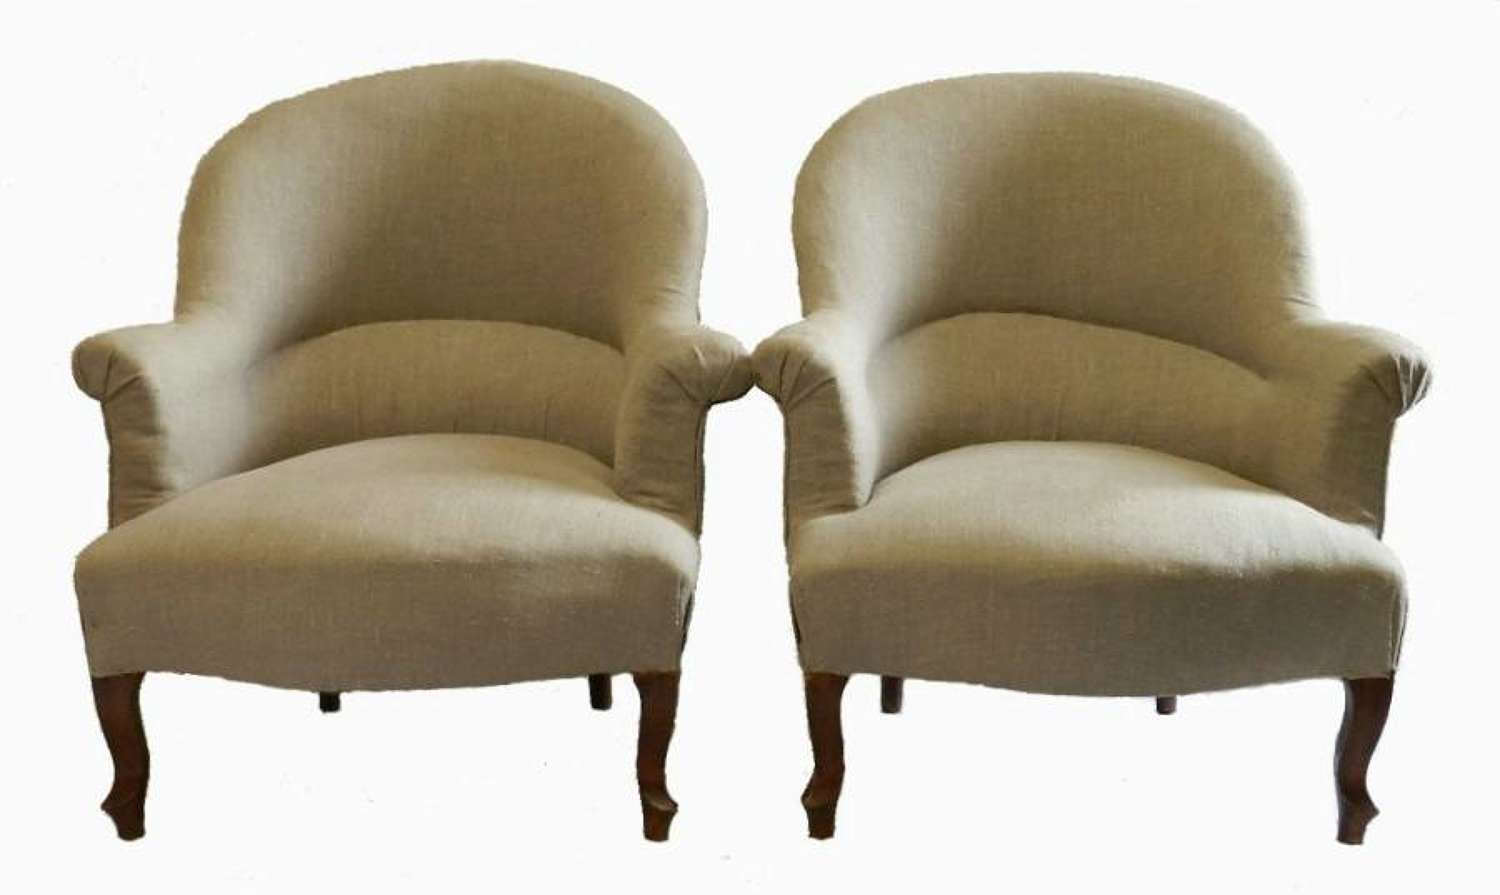 Pair of C19 French Armchairs